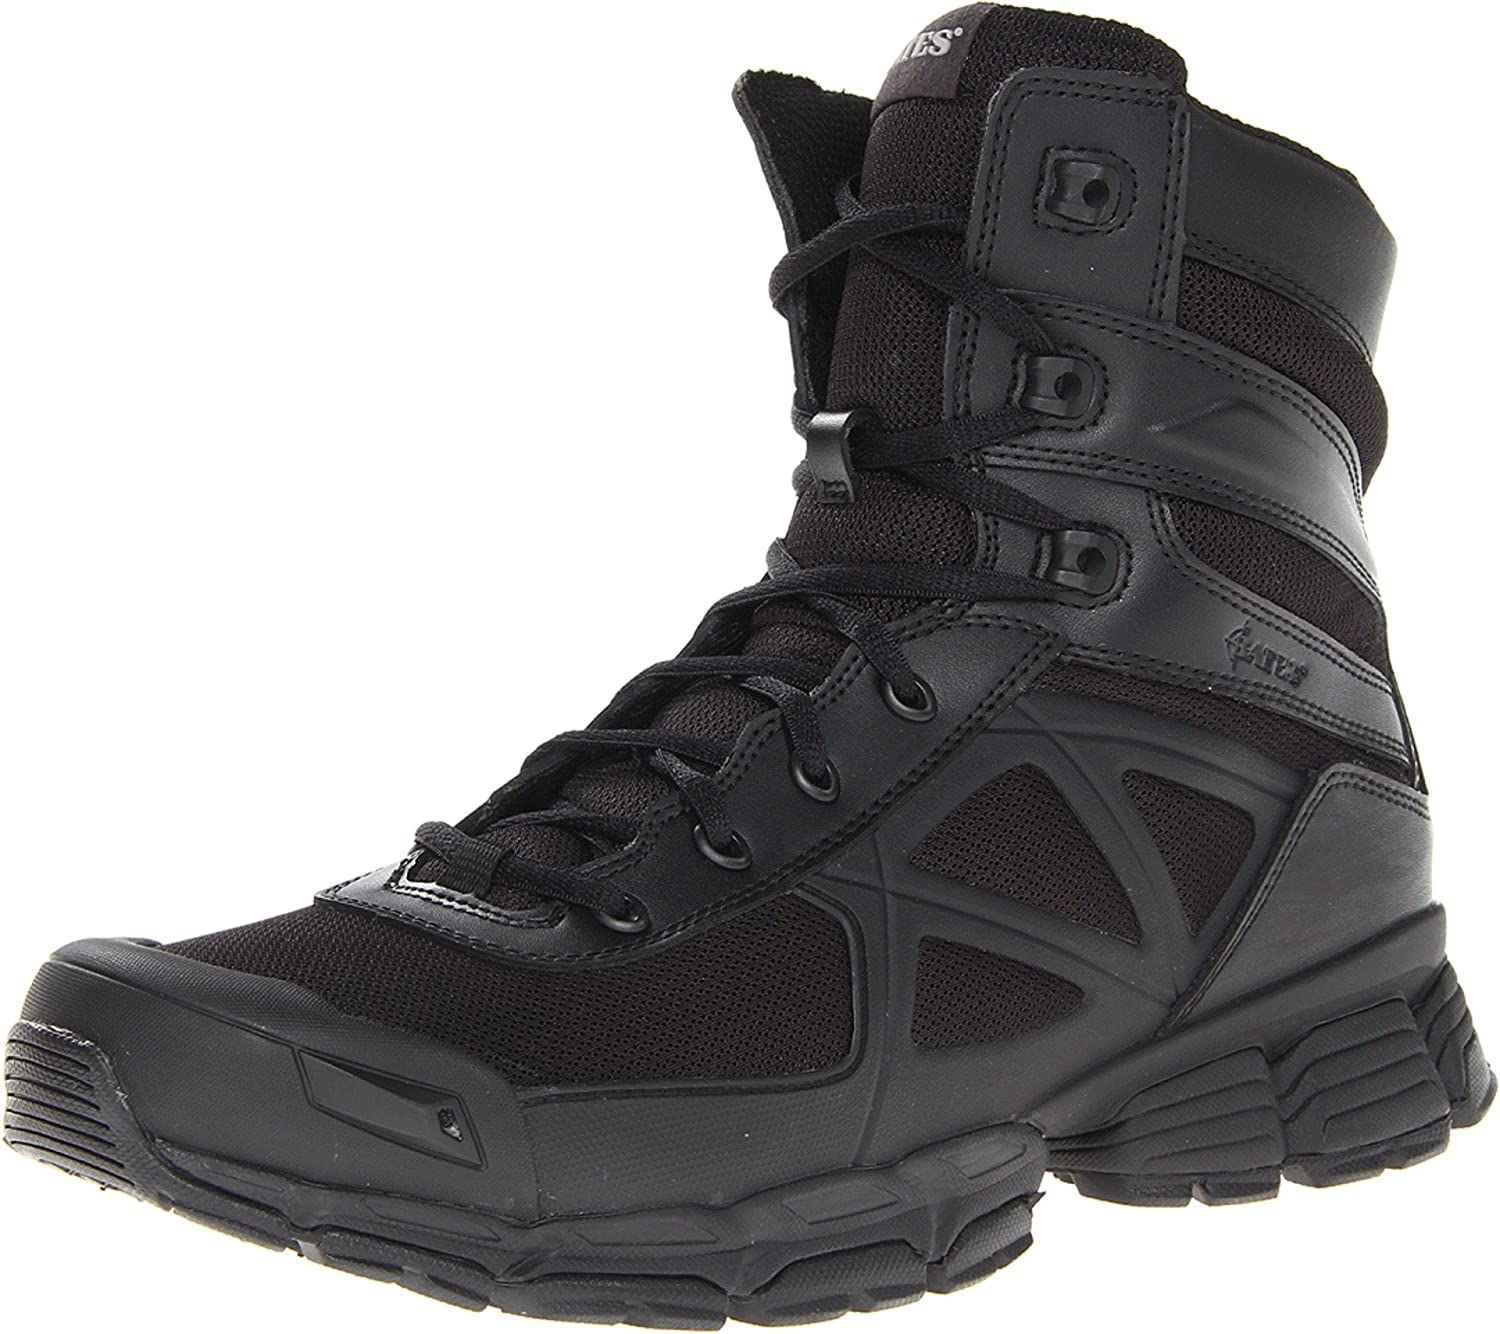 354cbf9fa57 Bates Men's Velocitor V Frame Uniform Boot